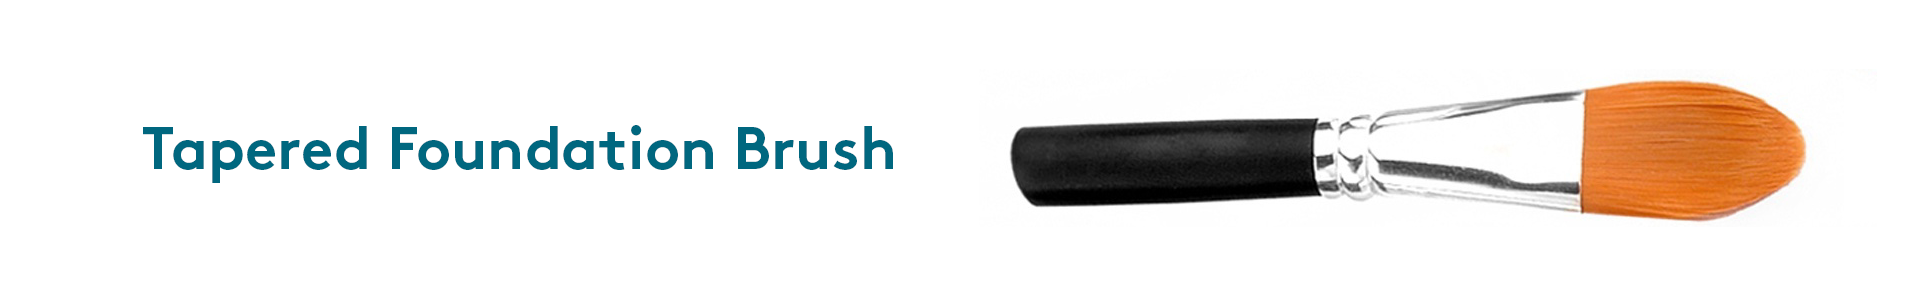 Type of makeup brush for foundation